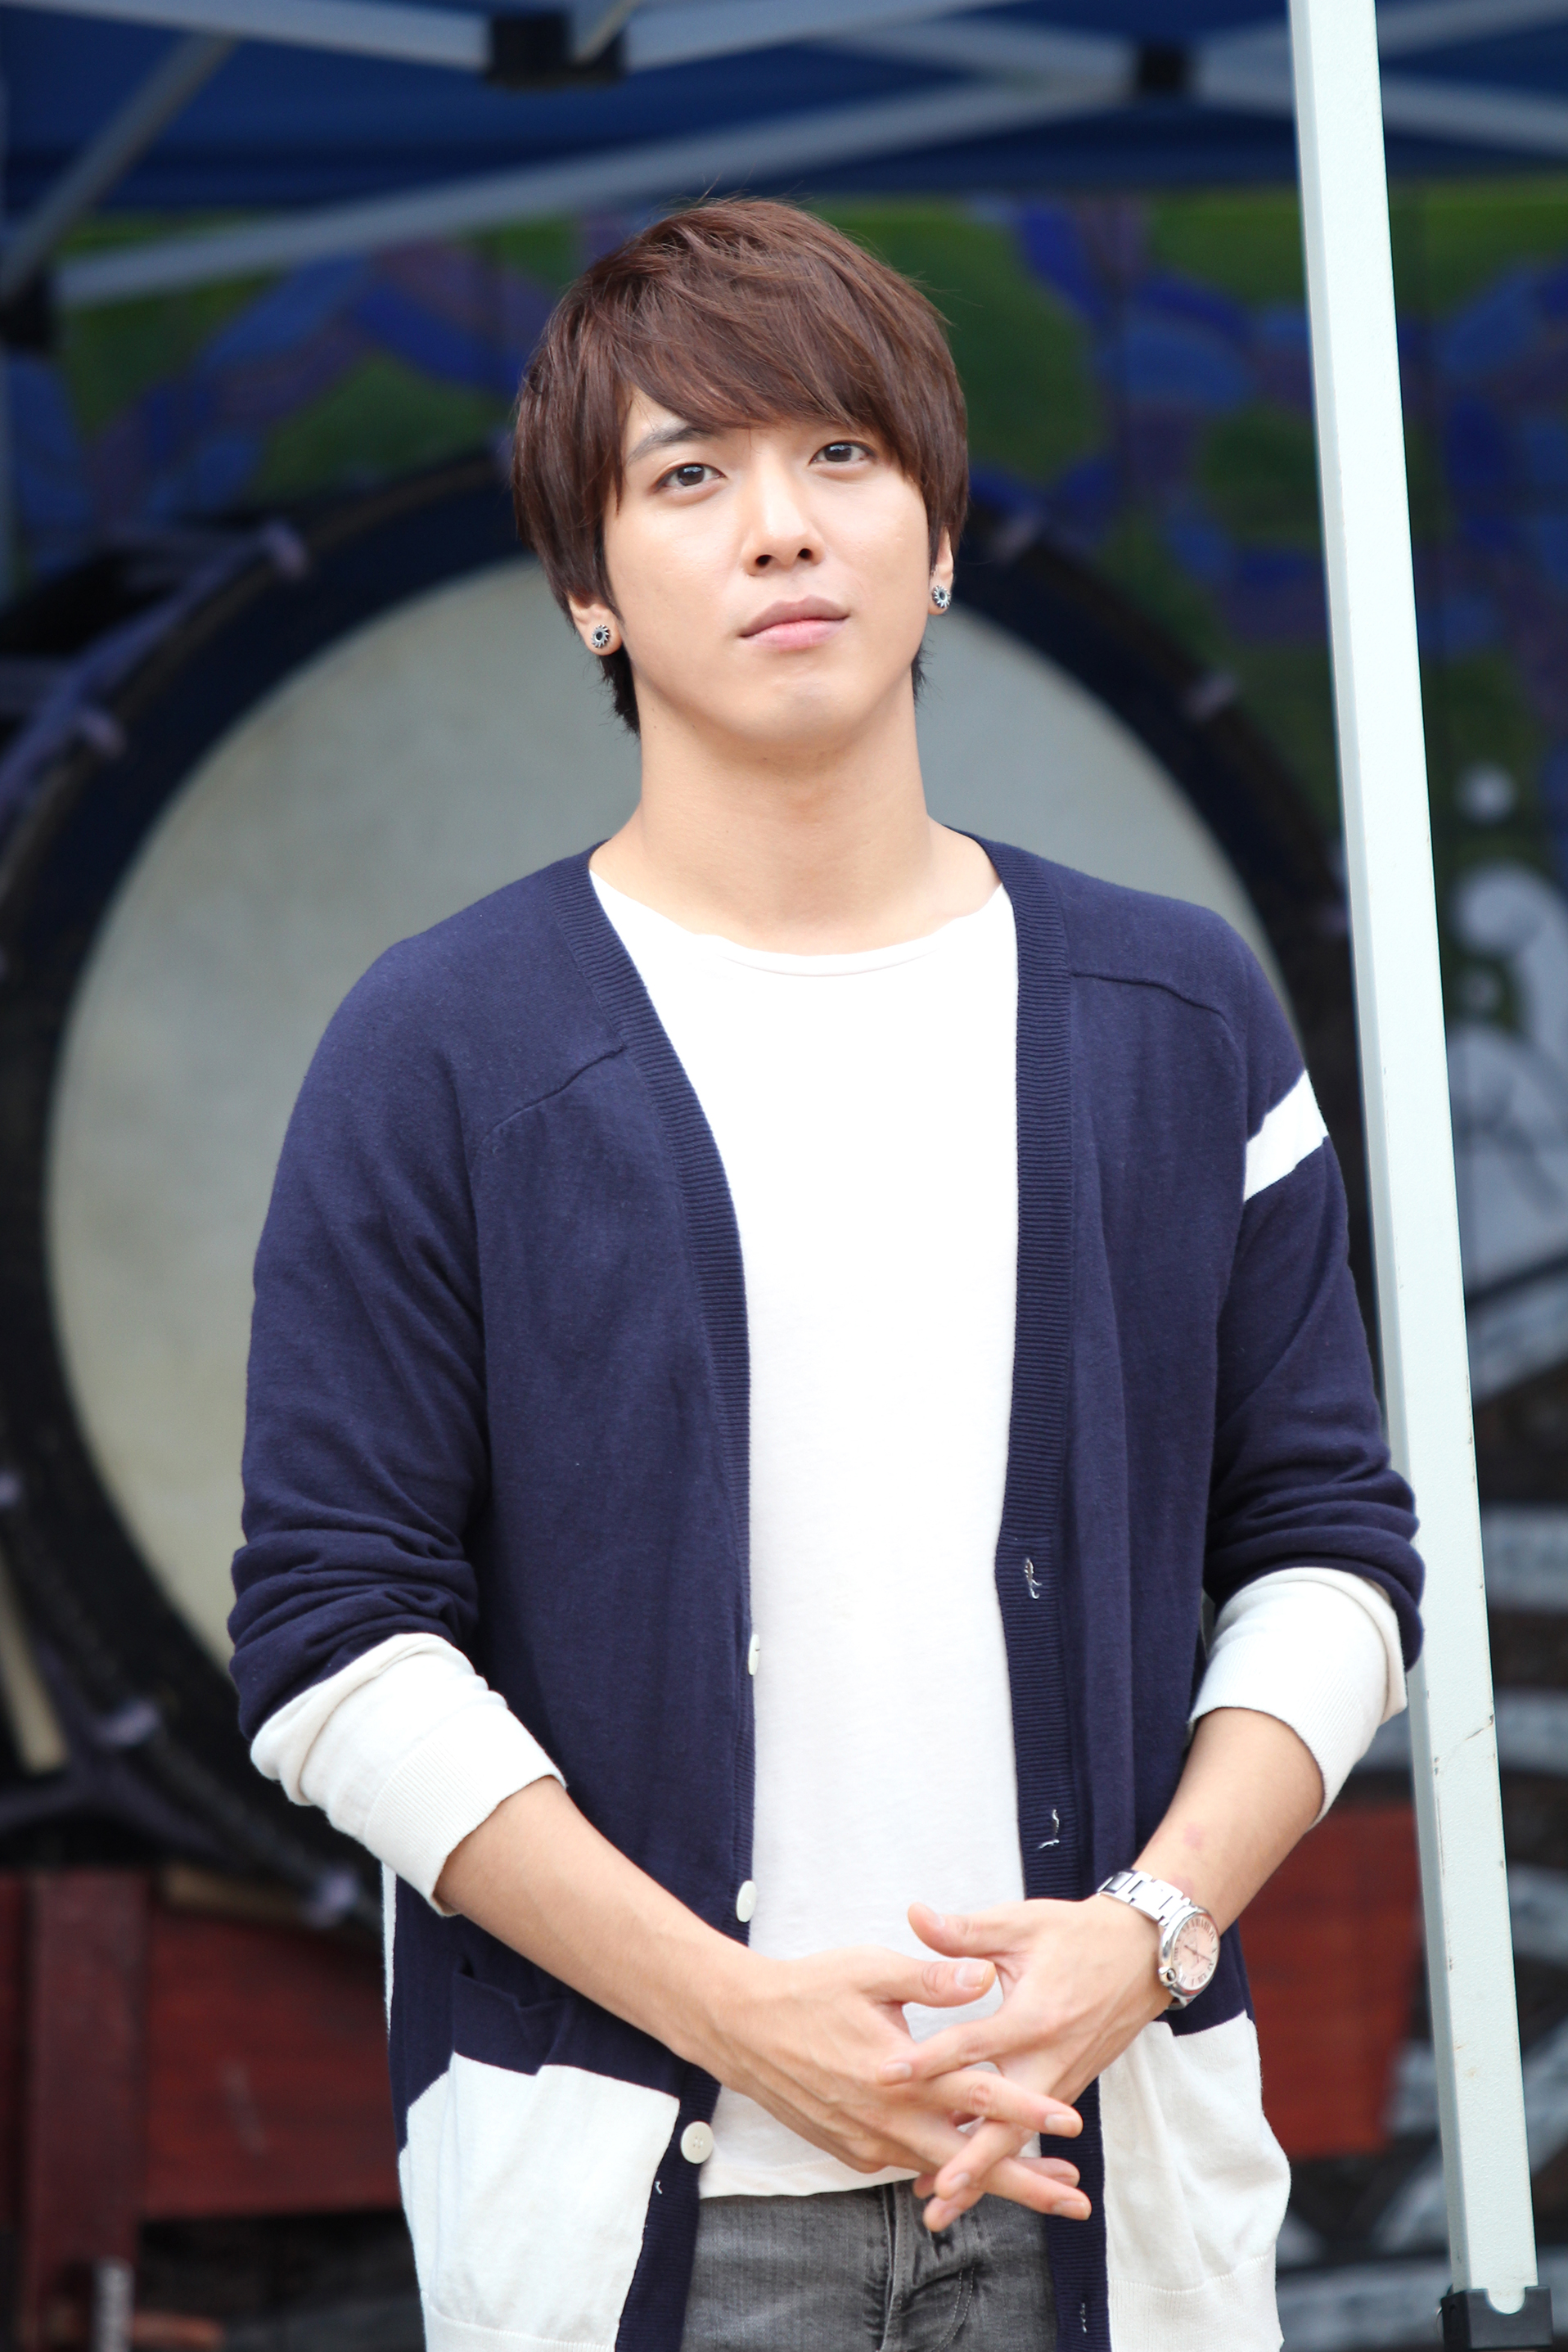 http://upload.wikimedia.org/wikipedia/commons/8/8c/Jung_Yong_Hwa_at_Insadong_in_2012.jpg